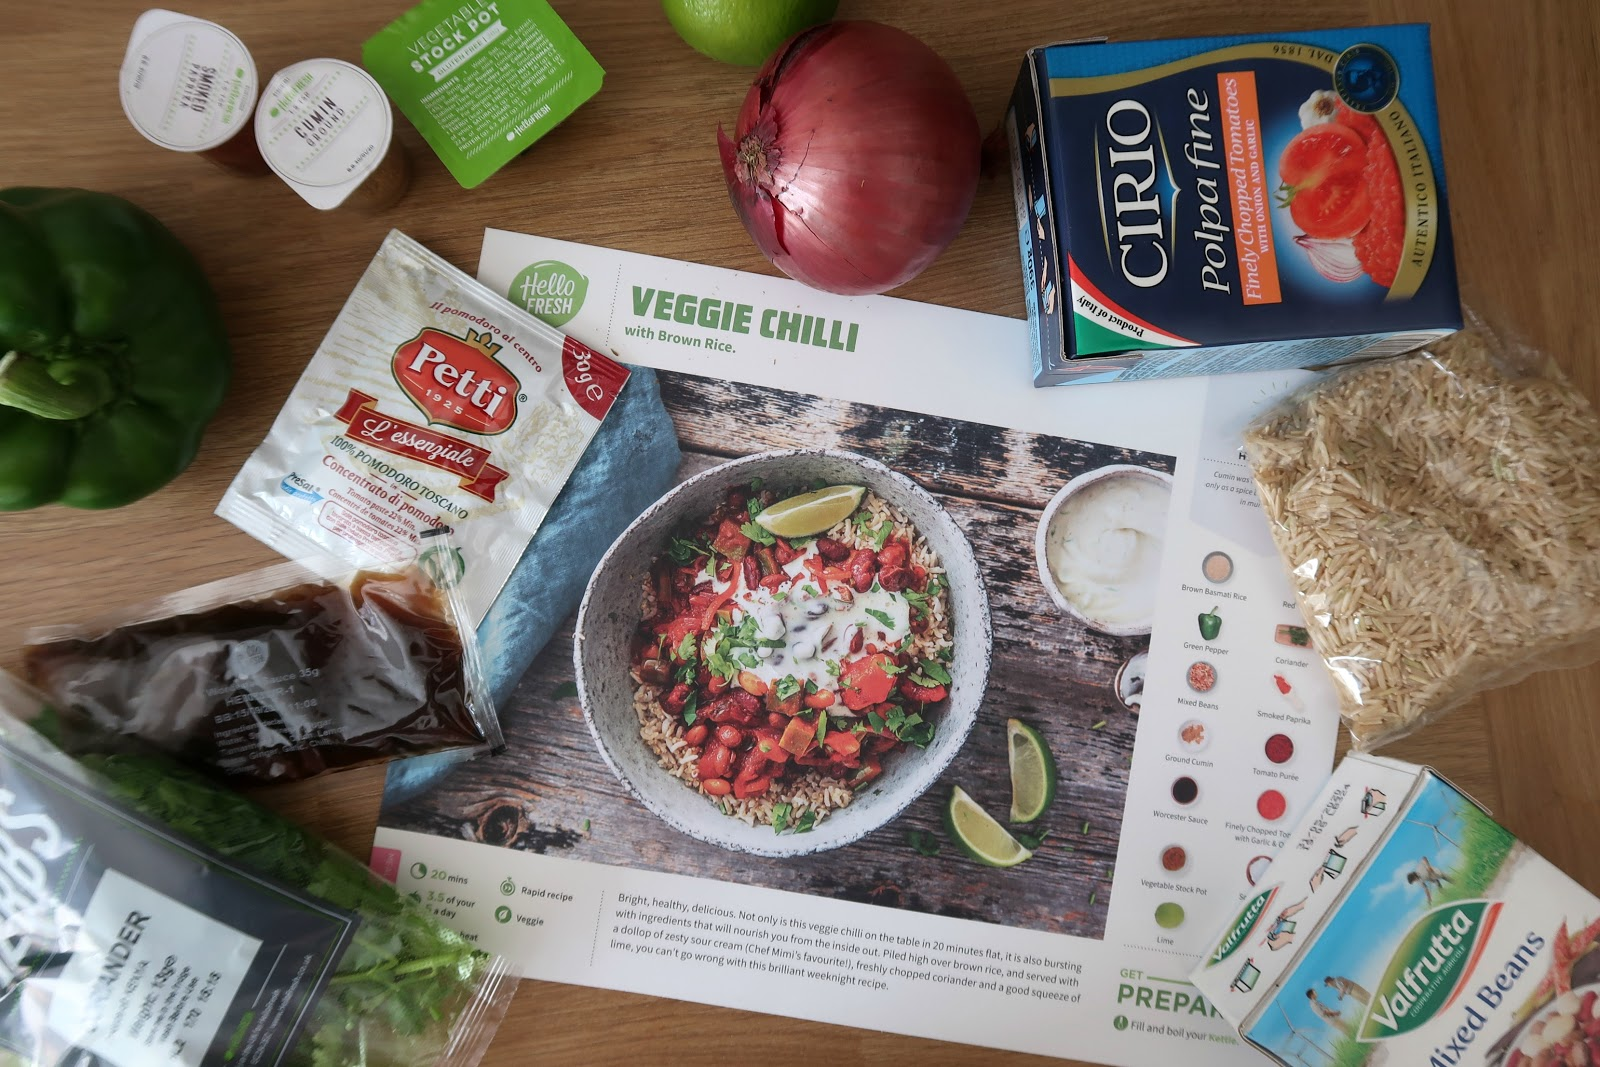 Meal Kit Delivery Service Hellofresh Warranty Verification